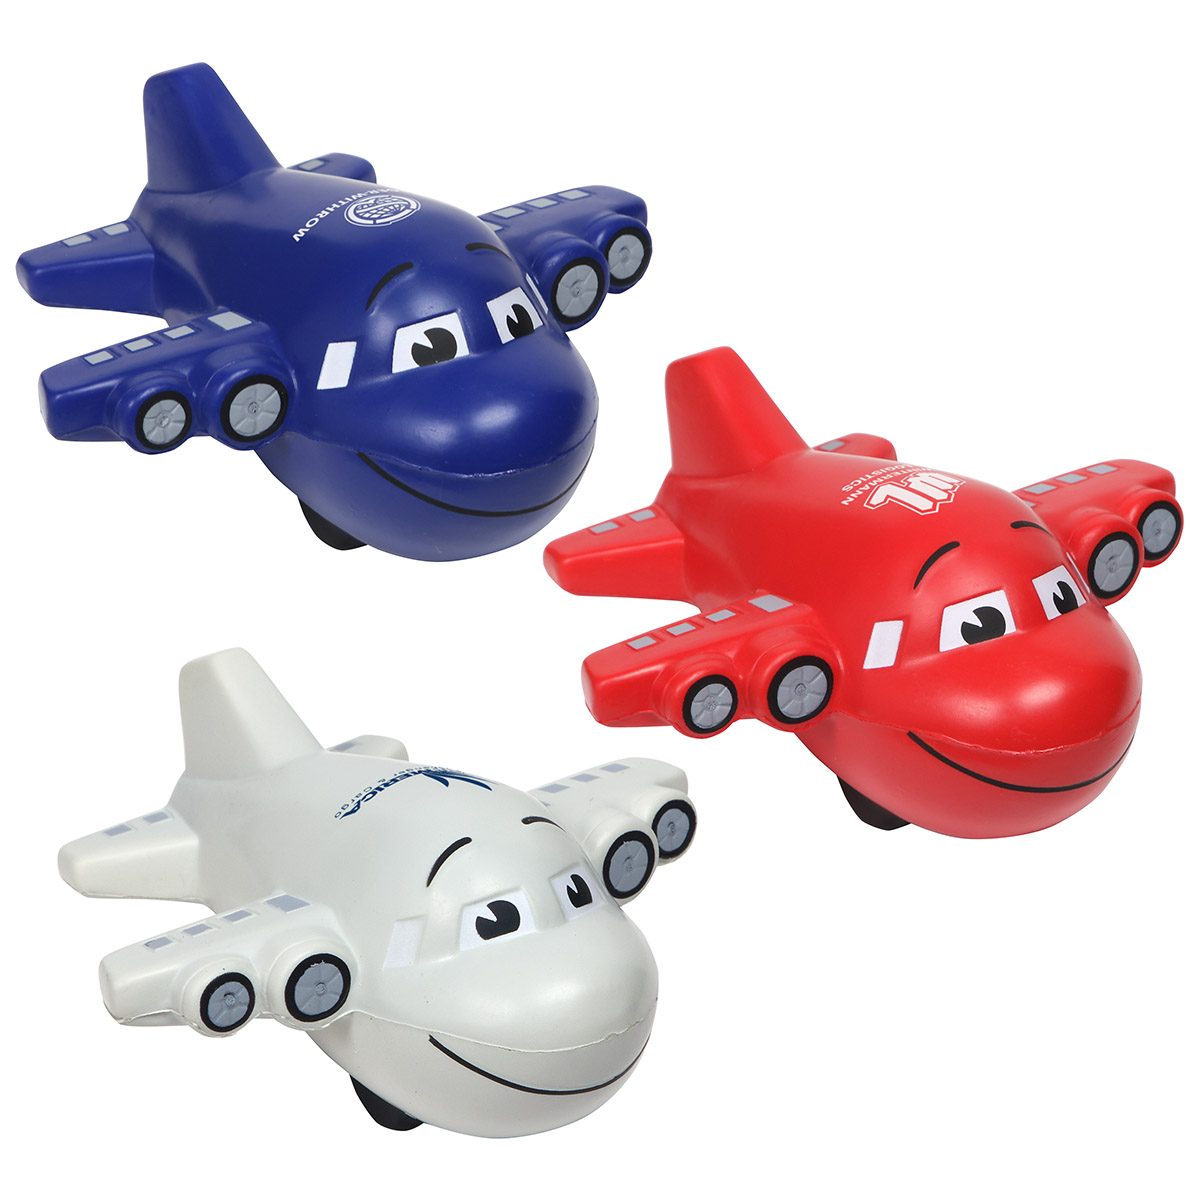 Large Airplane Stress Reliever, LAR-LA05 - 1 Colour Imprint